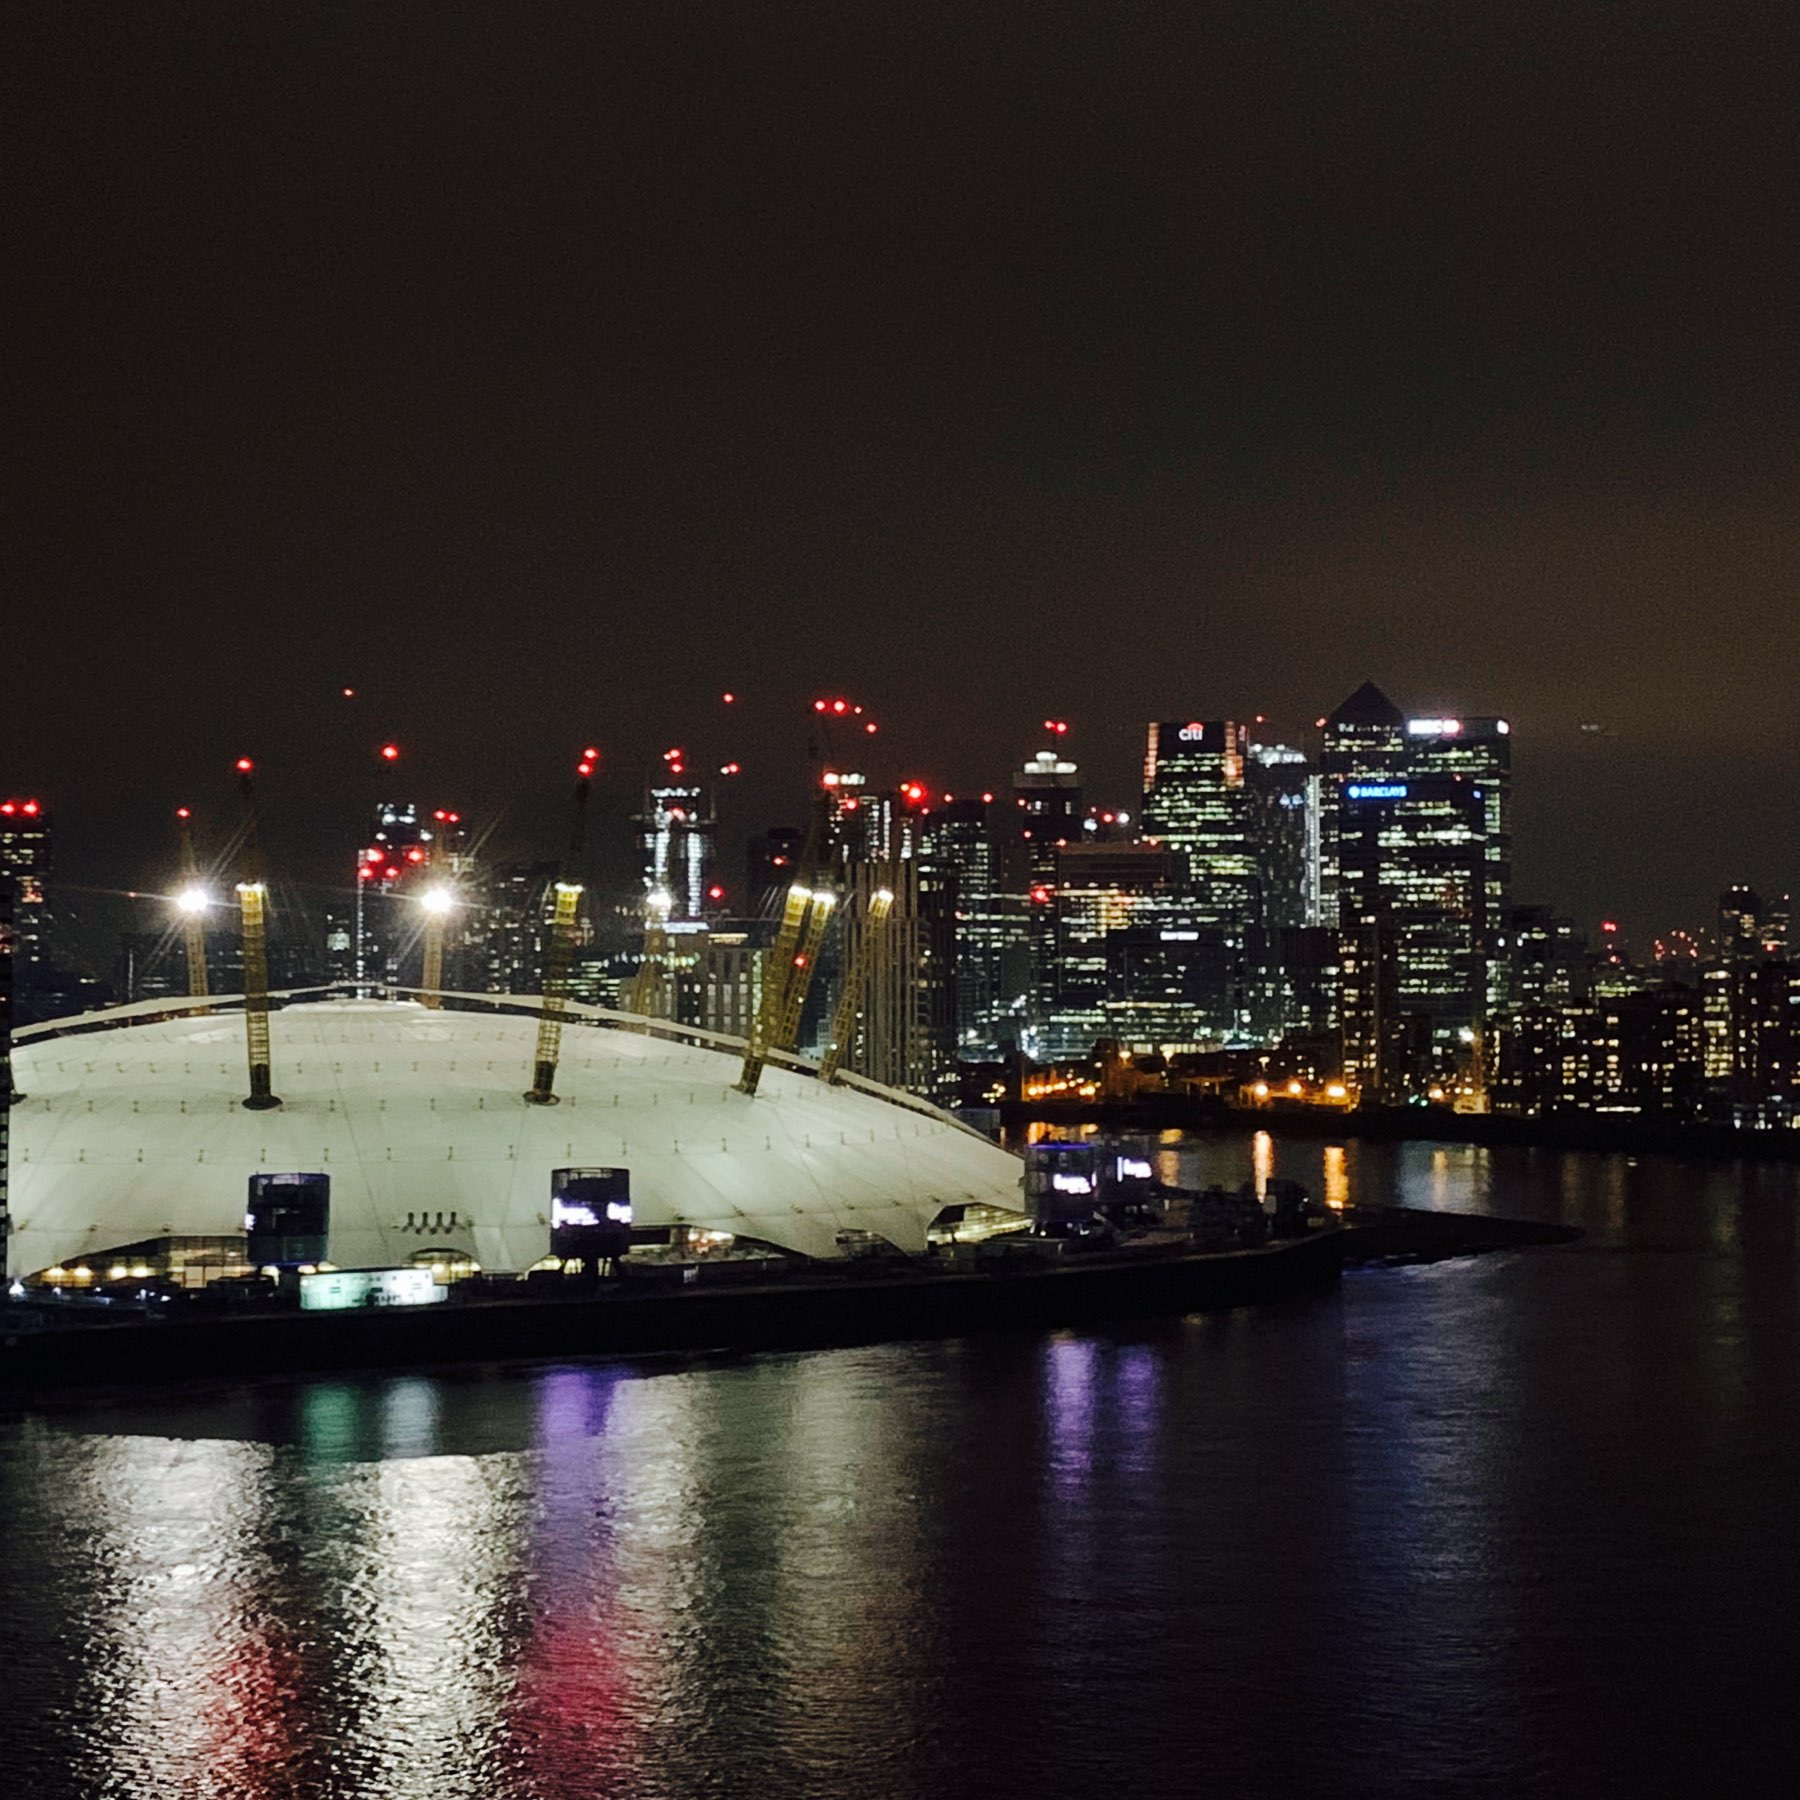 Docklands from the Emirates Airline.